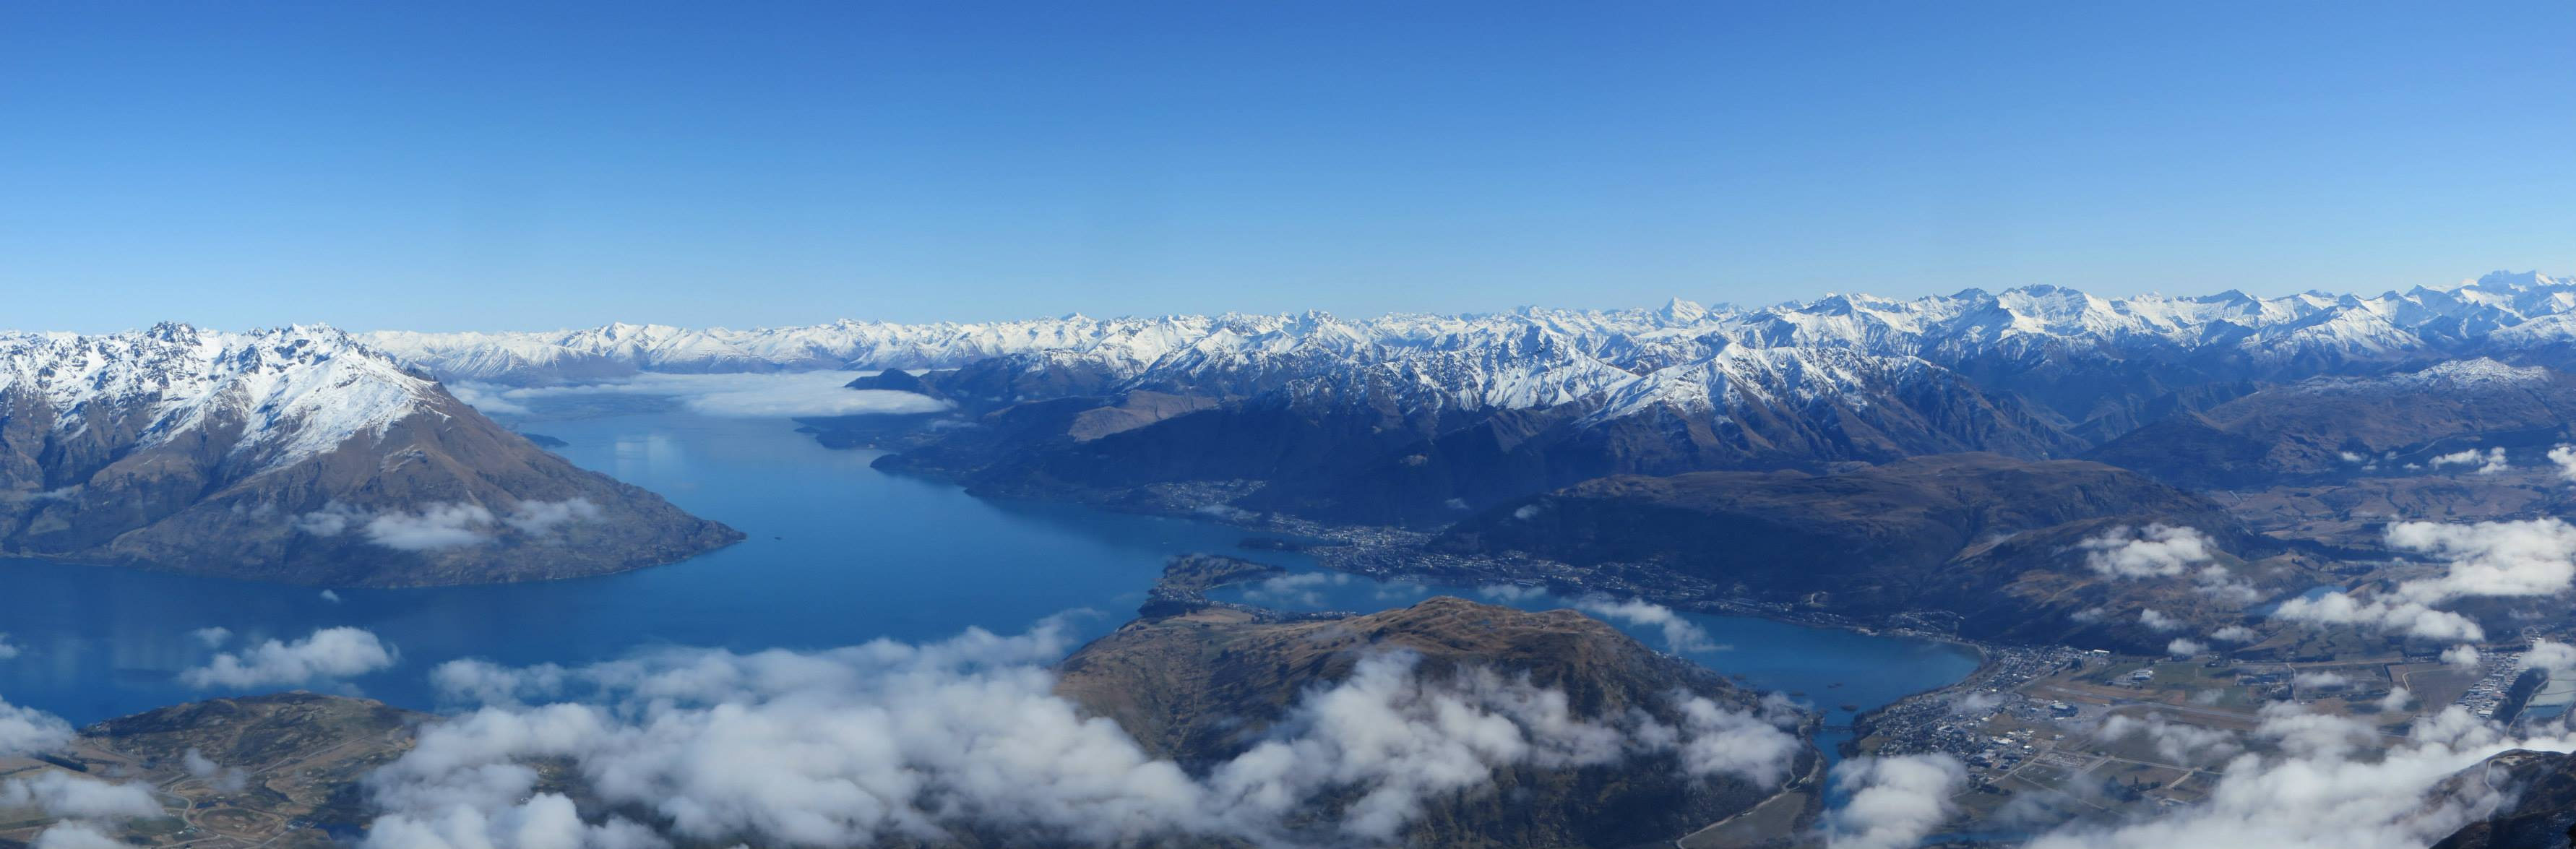 token view point panorama, Remarkables